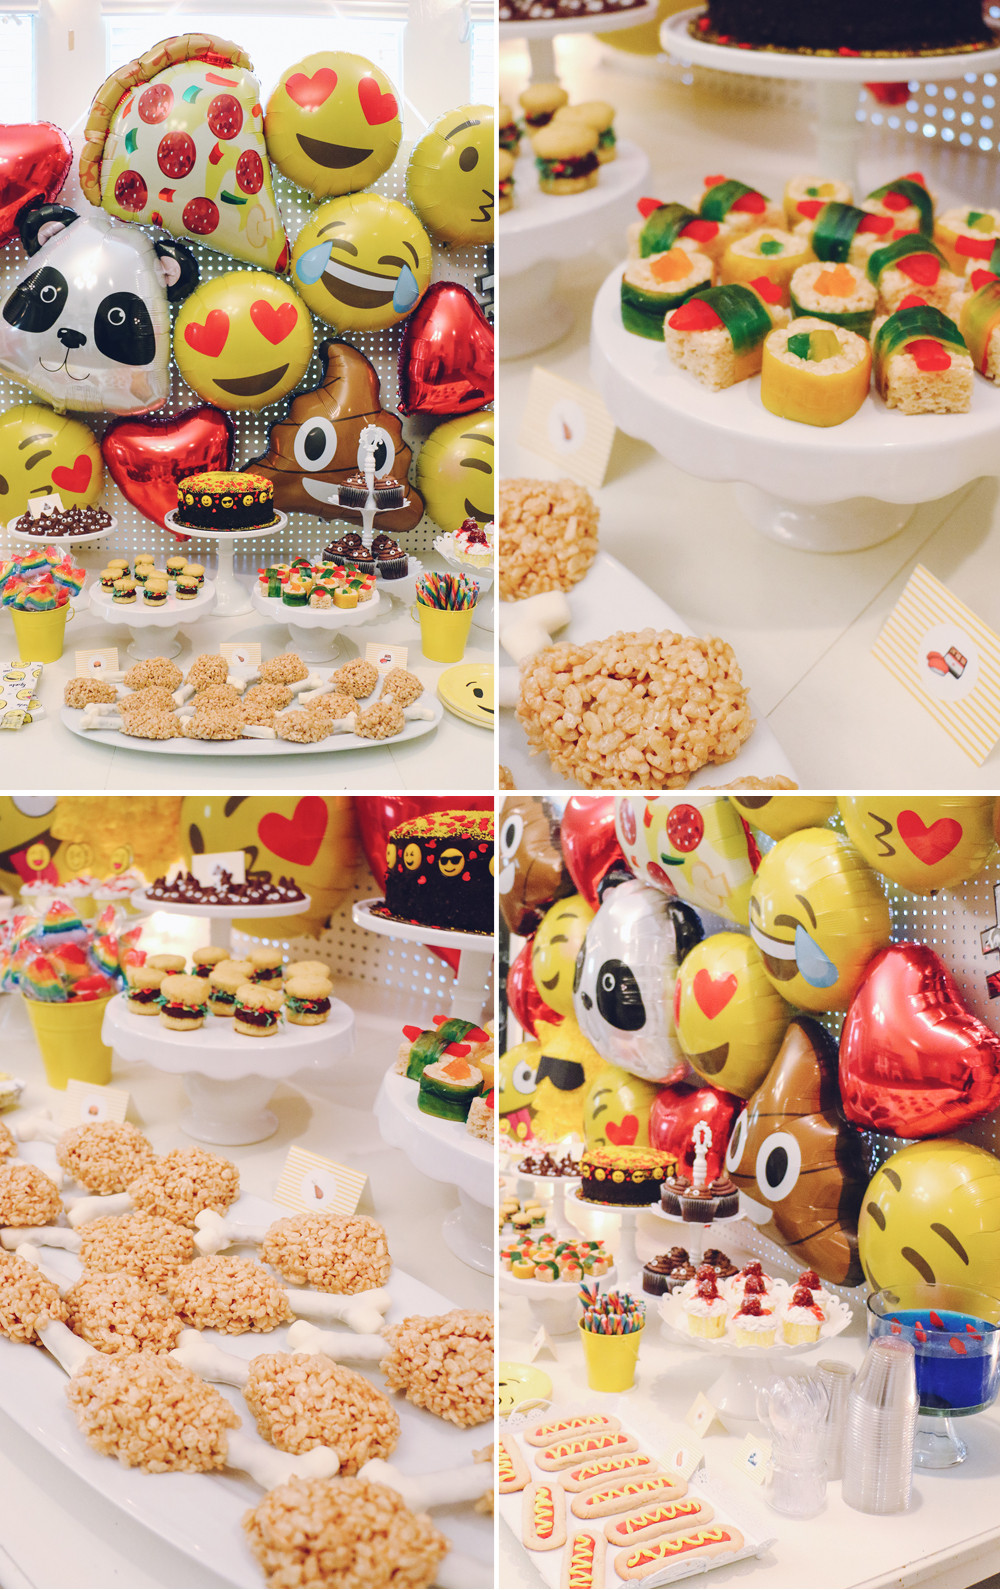 Best ideas about Emoji Birthday Party . Save or Pin Sophia's Emoji Birthday Party – At Home With Natalie Now.